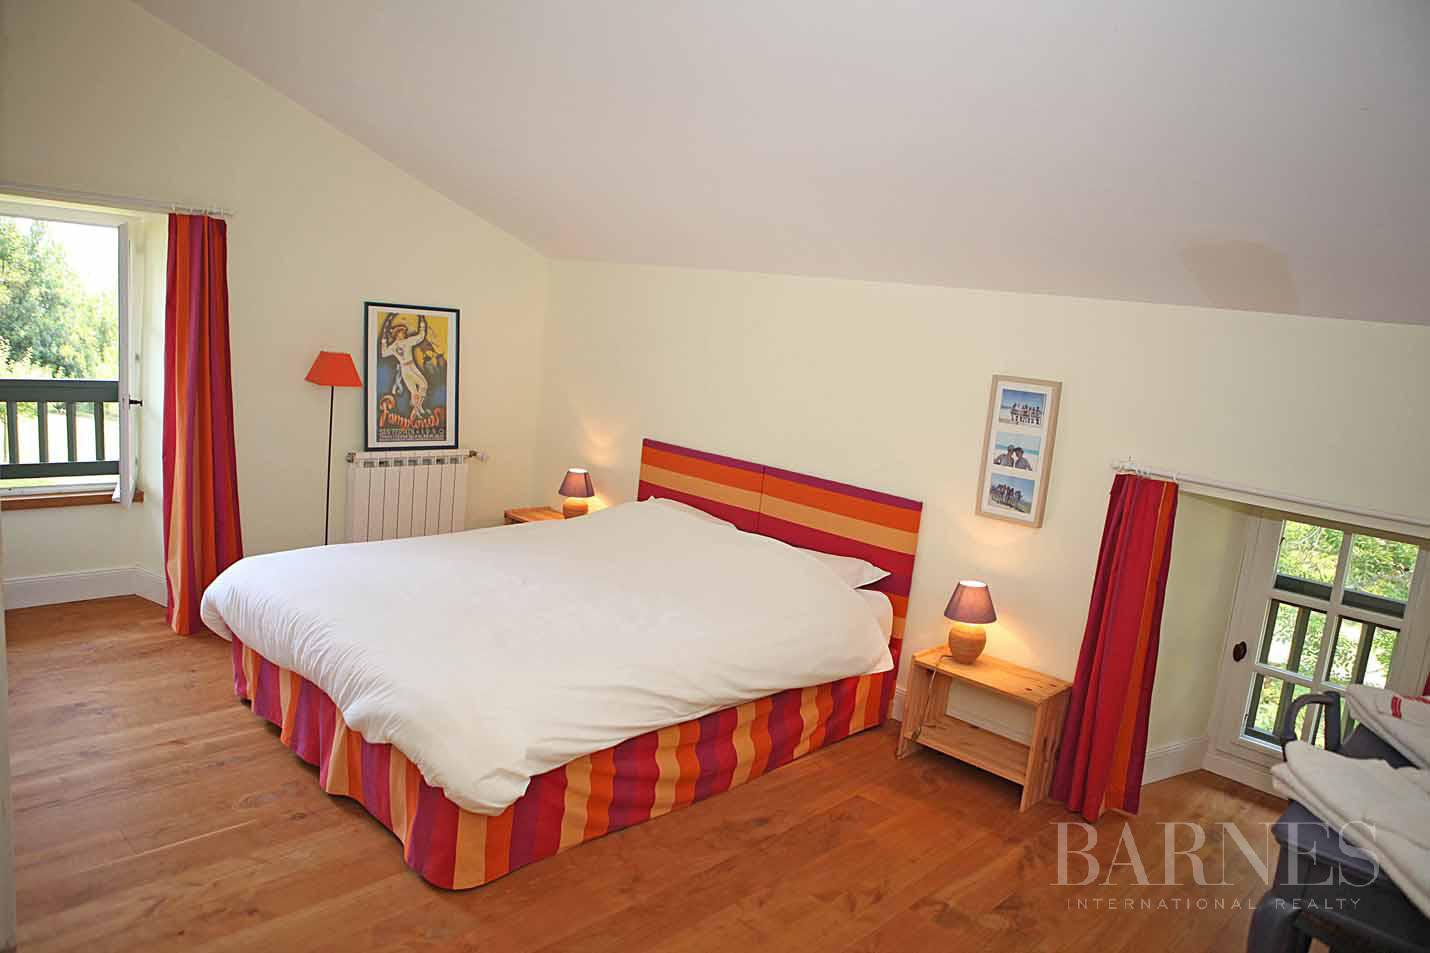 SARE, 20 MINUTES FROM SAINT JEAN DE LUZ, BASQUE STYLE FARMHOUSE WITH HEATED POOL, PANORAMIC MOUNTAIN VIEW picture 15